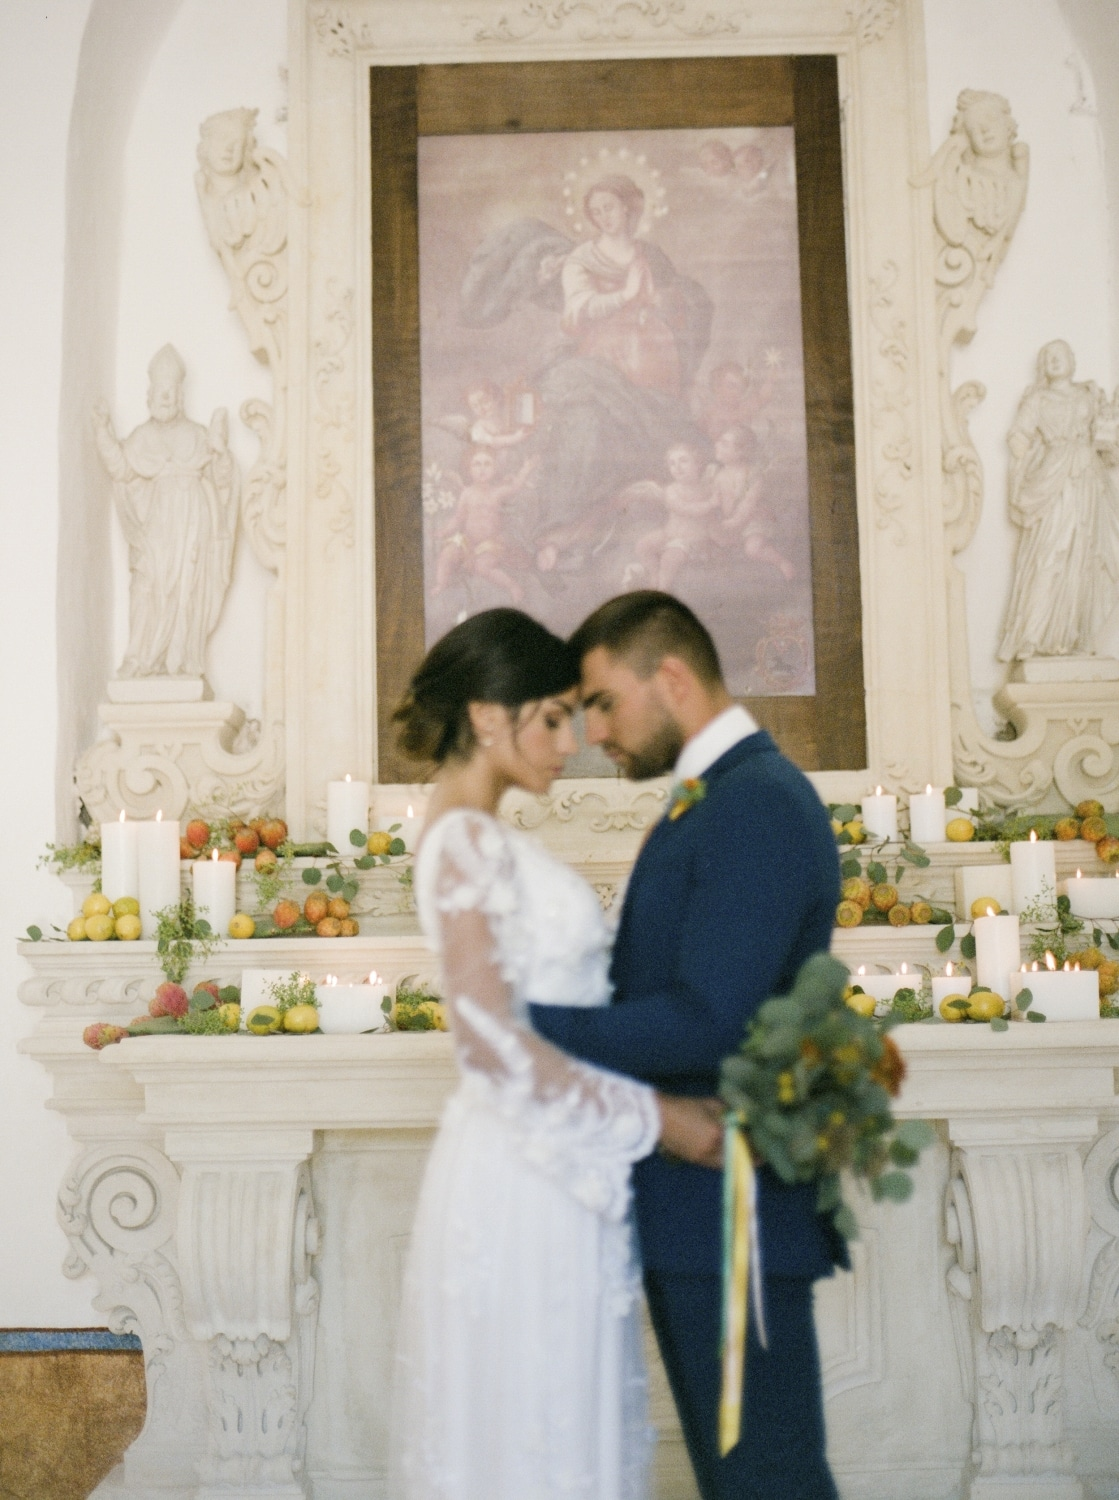 bride and groom holding each other in front of altar in Italian wedding